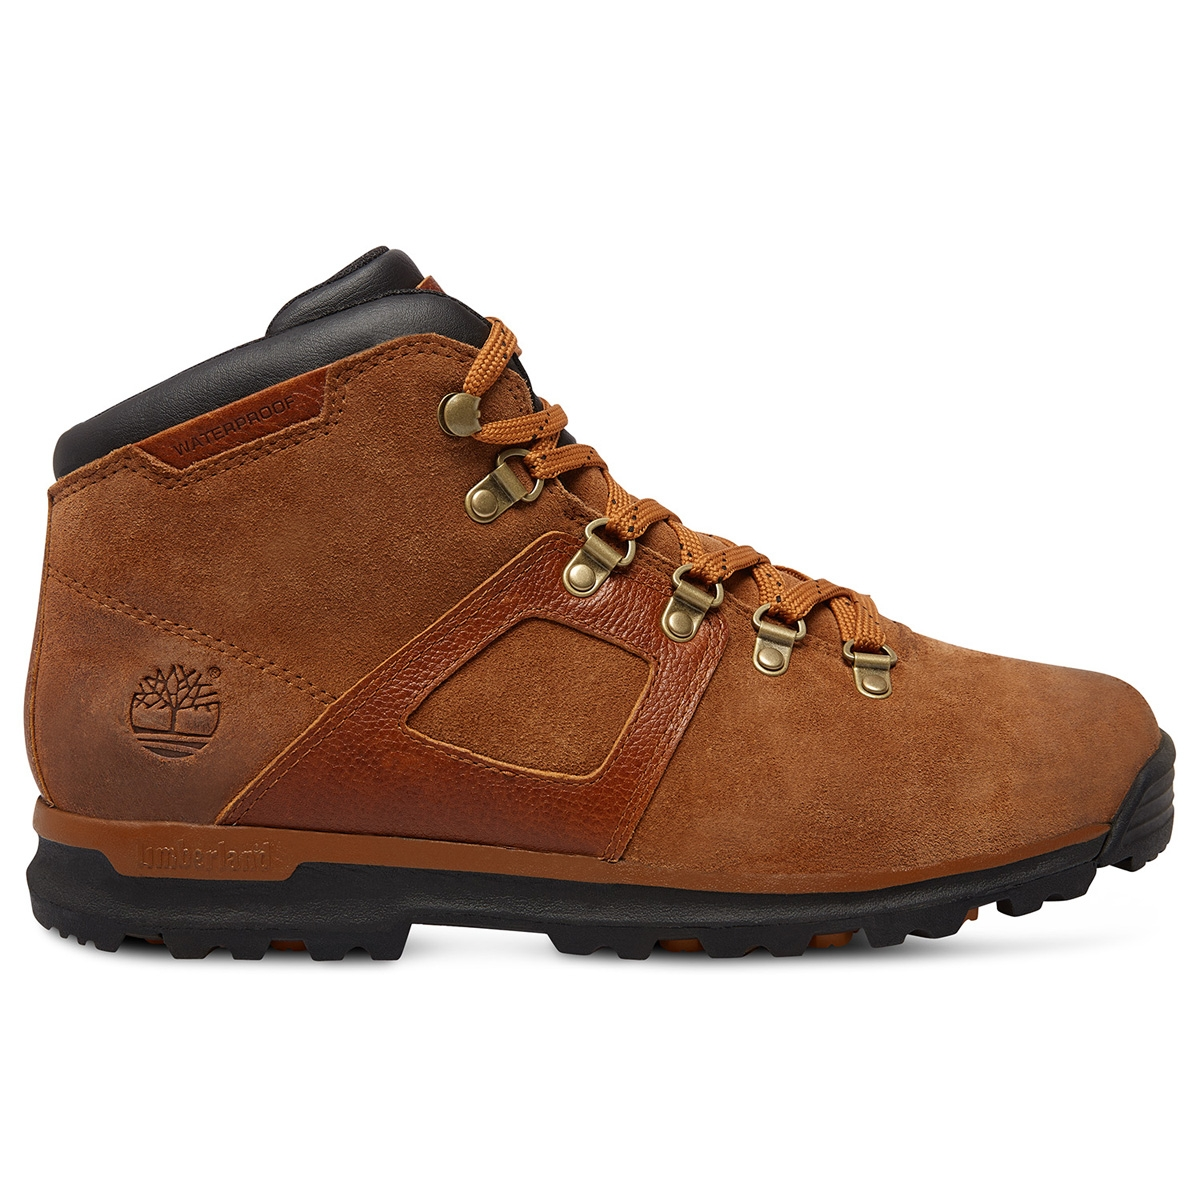 Image of Timberland GT Scramble Mid Leather Waterproof Boots (Men's) Brown